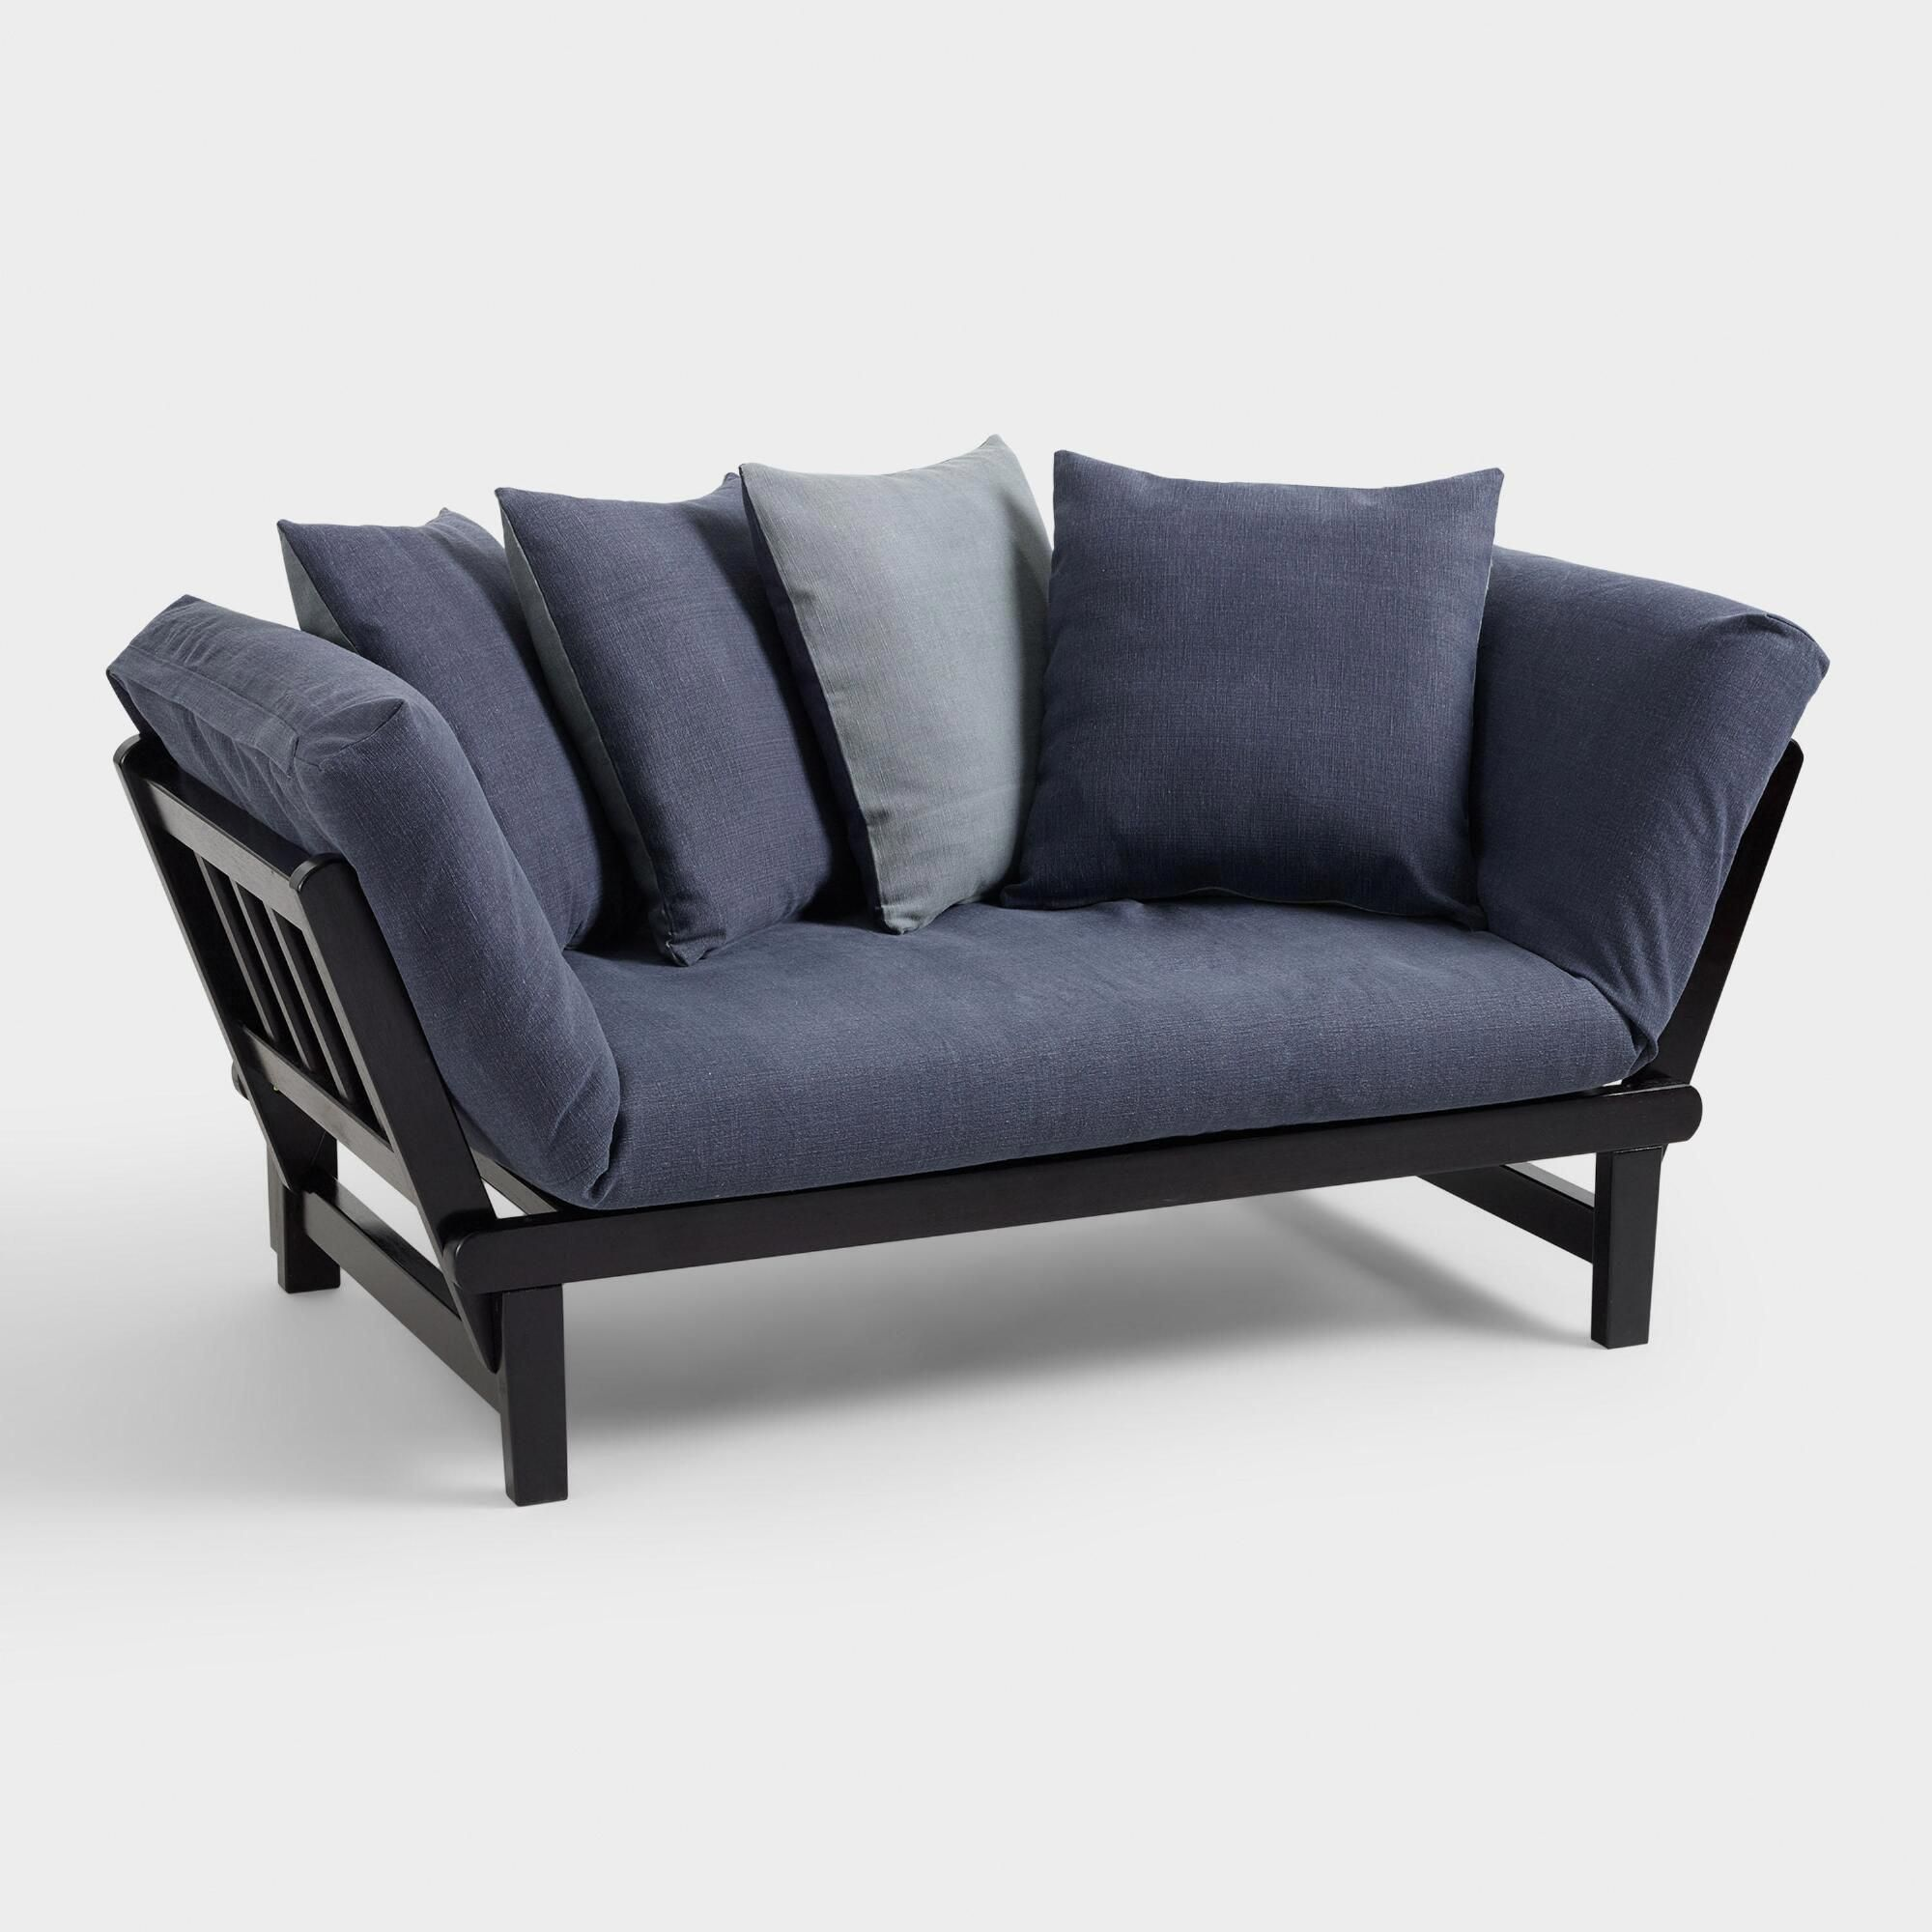 Blue and Gray Studio Day Sofa Slipcover by World Market